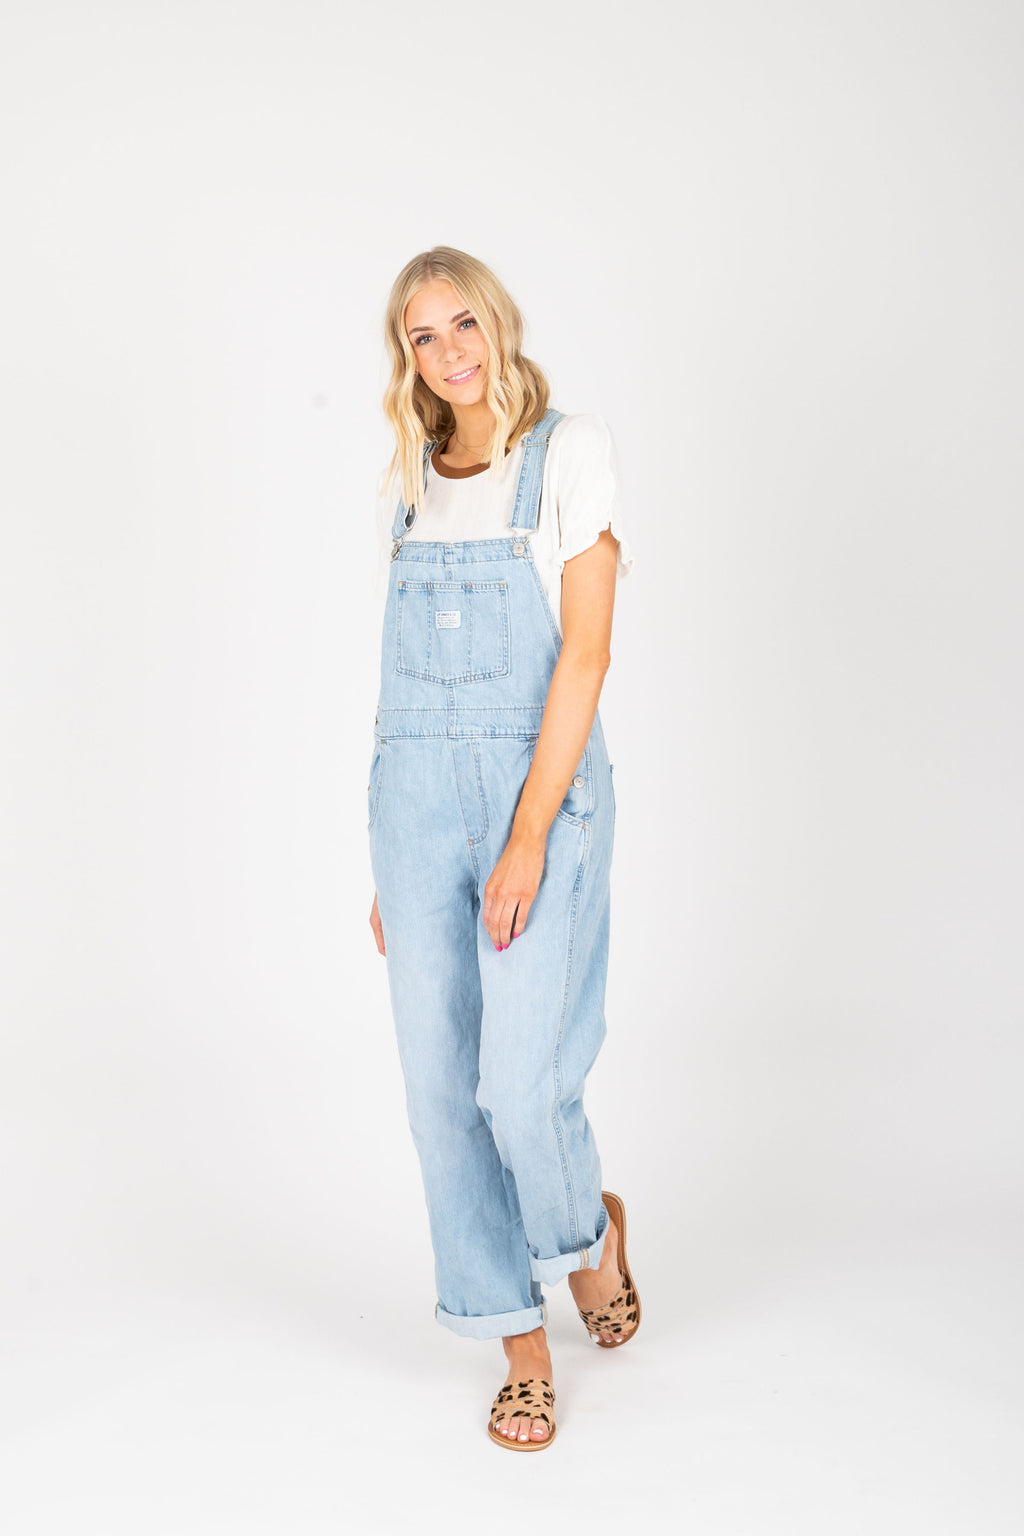 Levi's: Vintage Overalls in Throw Back Medium Wash, studio shoot; front view